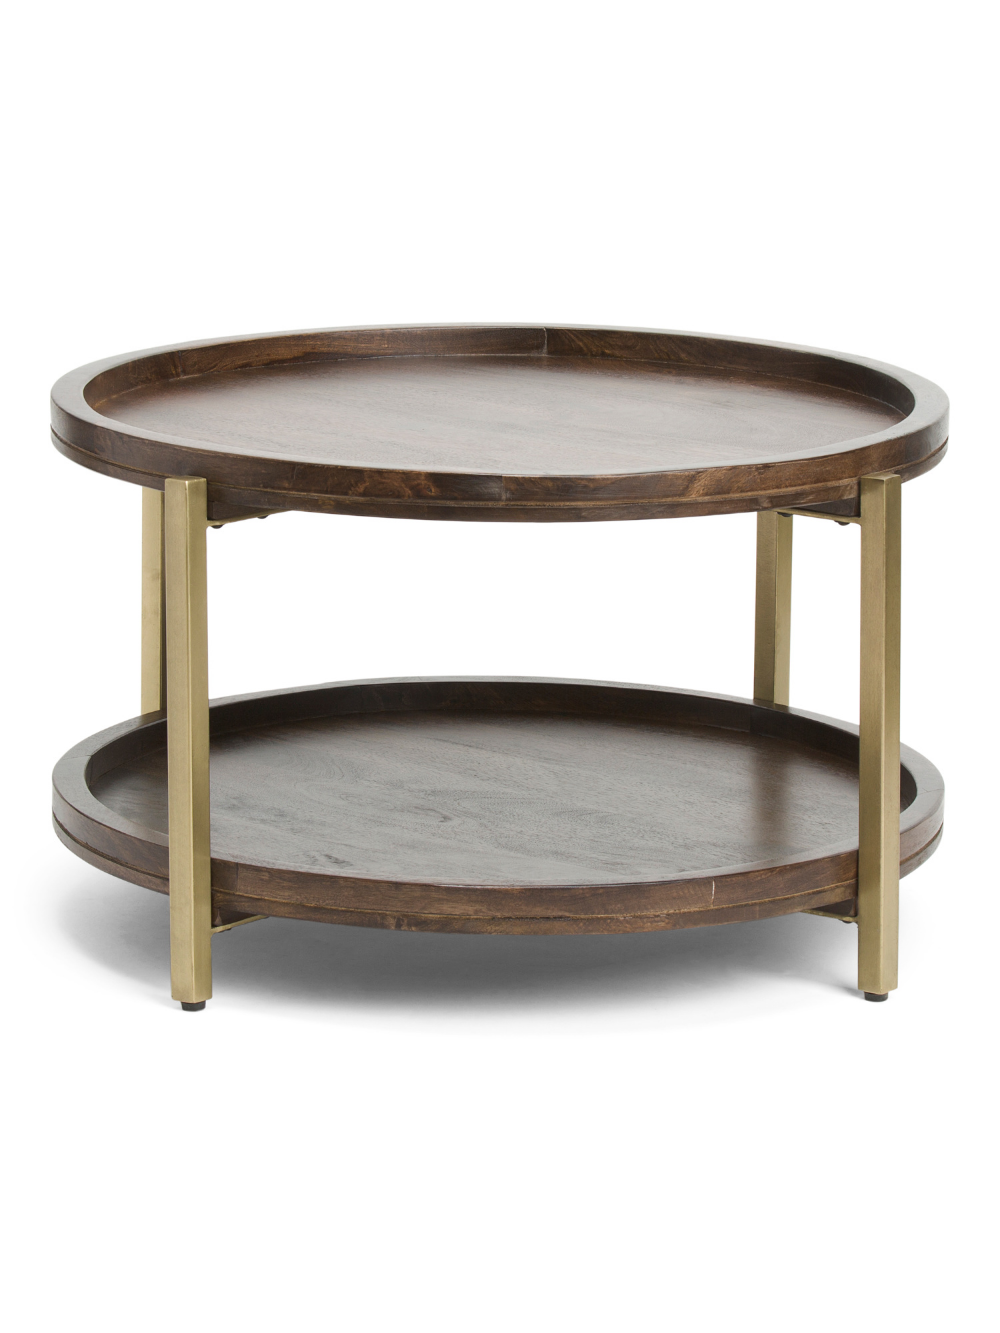 Baxter Coffee Table in 2020 | Table, Furniture, Accent ...